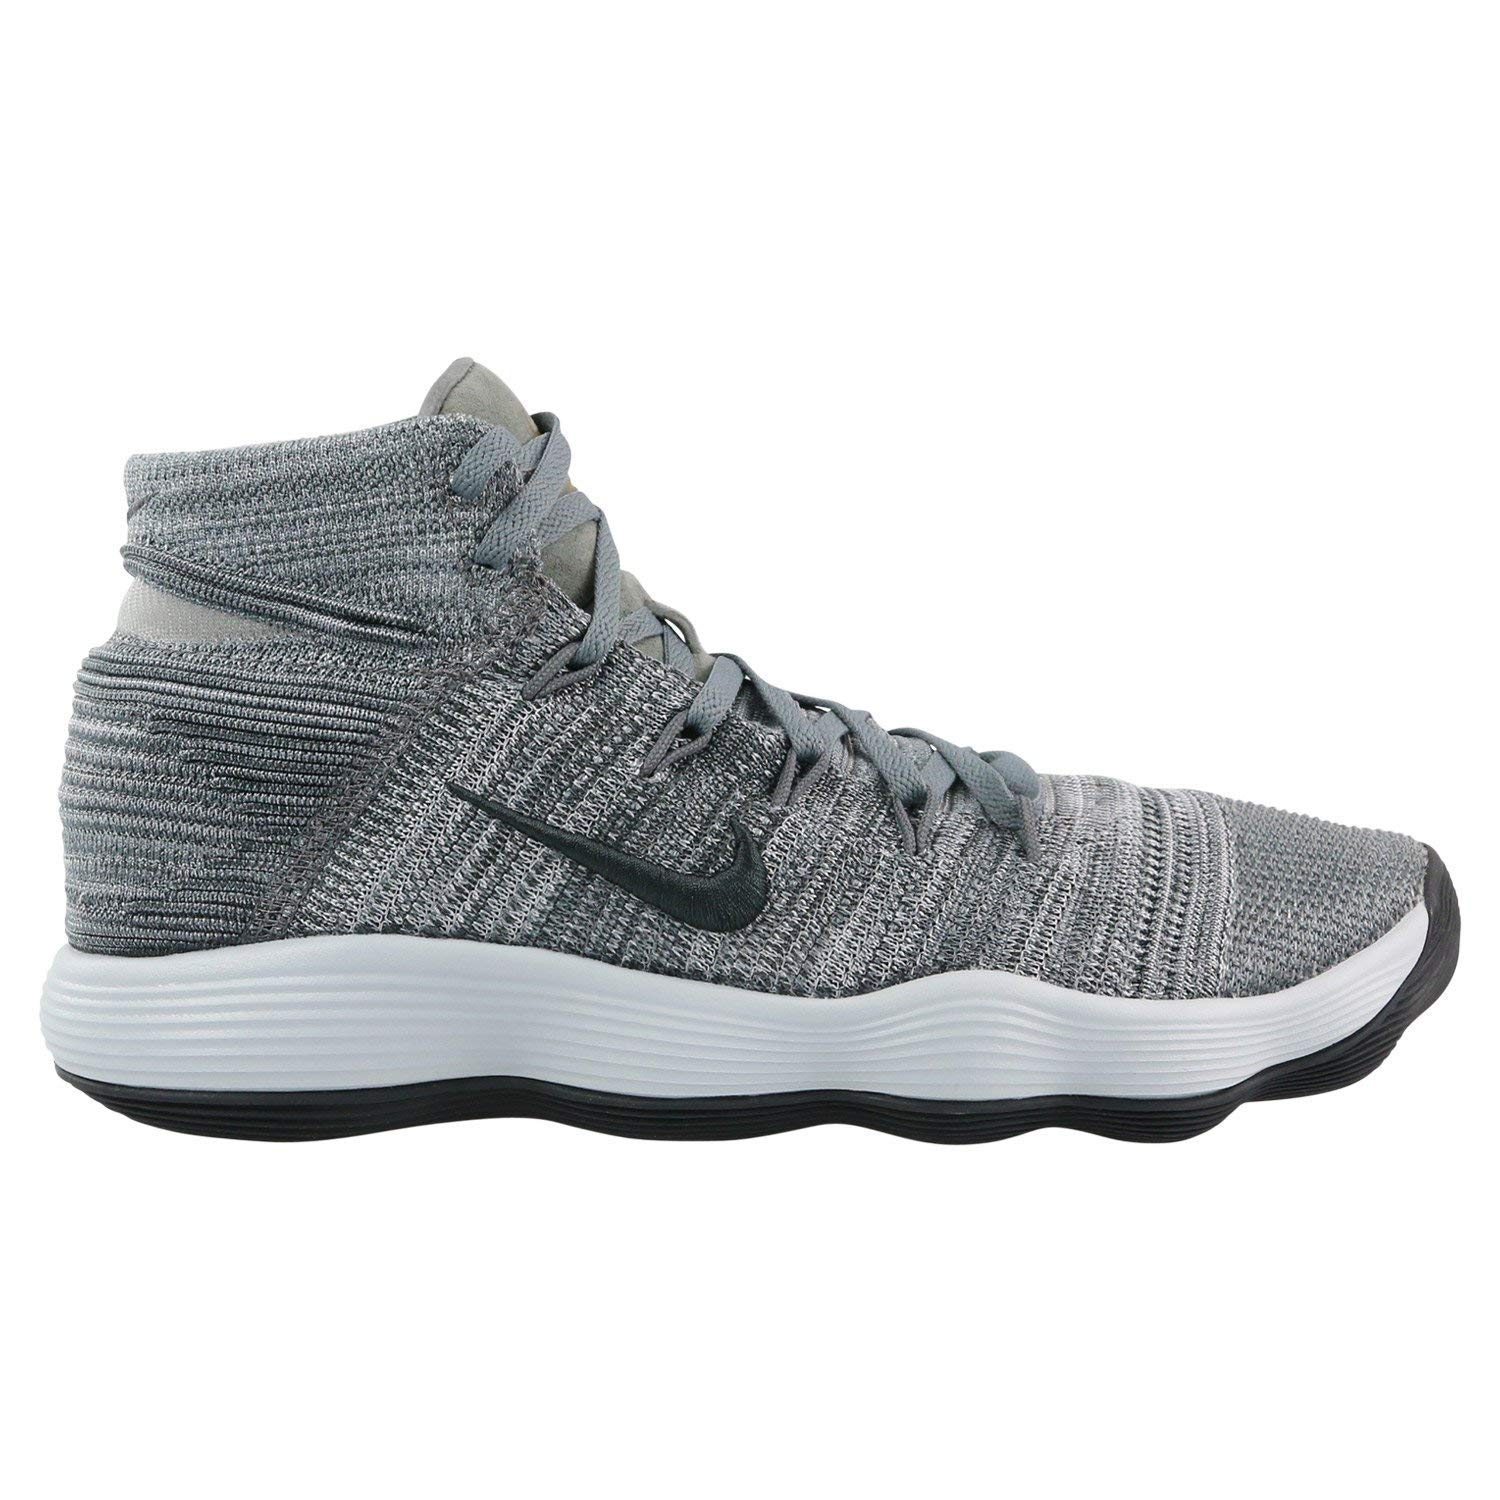 fd3a3c98f7d Amazon.com  Nike Hyperdunk 2017 Flyknit basketball shoes mens cool grey  anthracite NEW 917726-007 - 11  Clothing